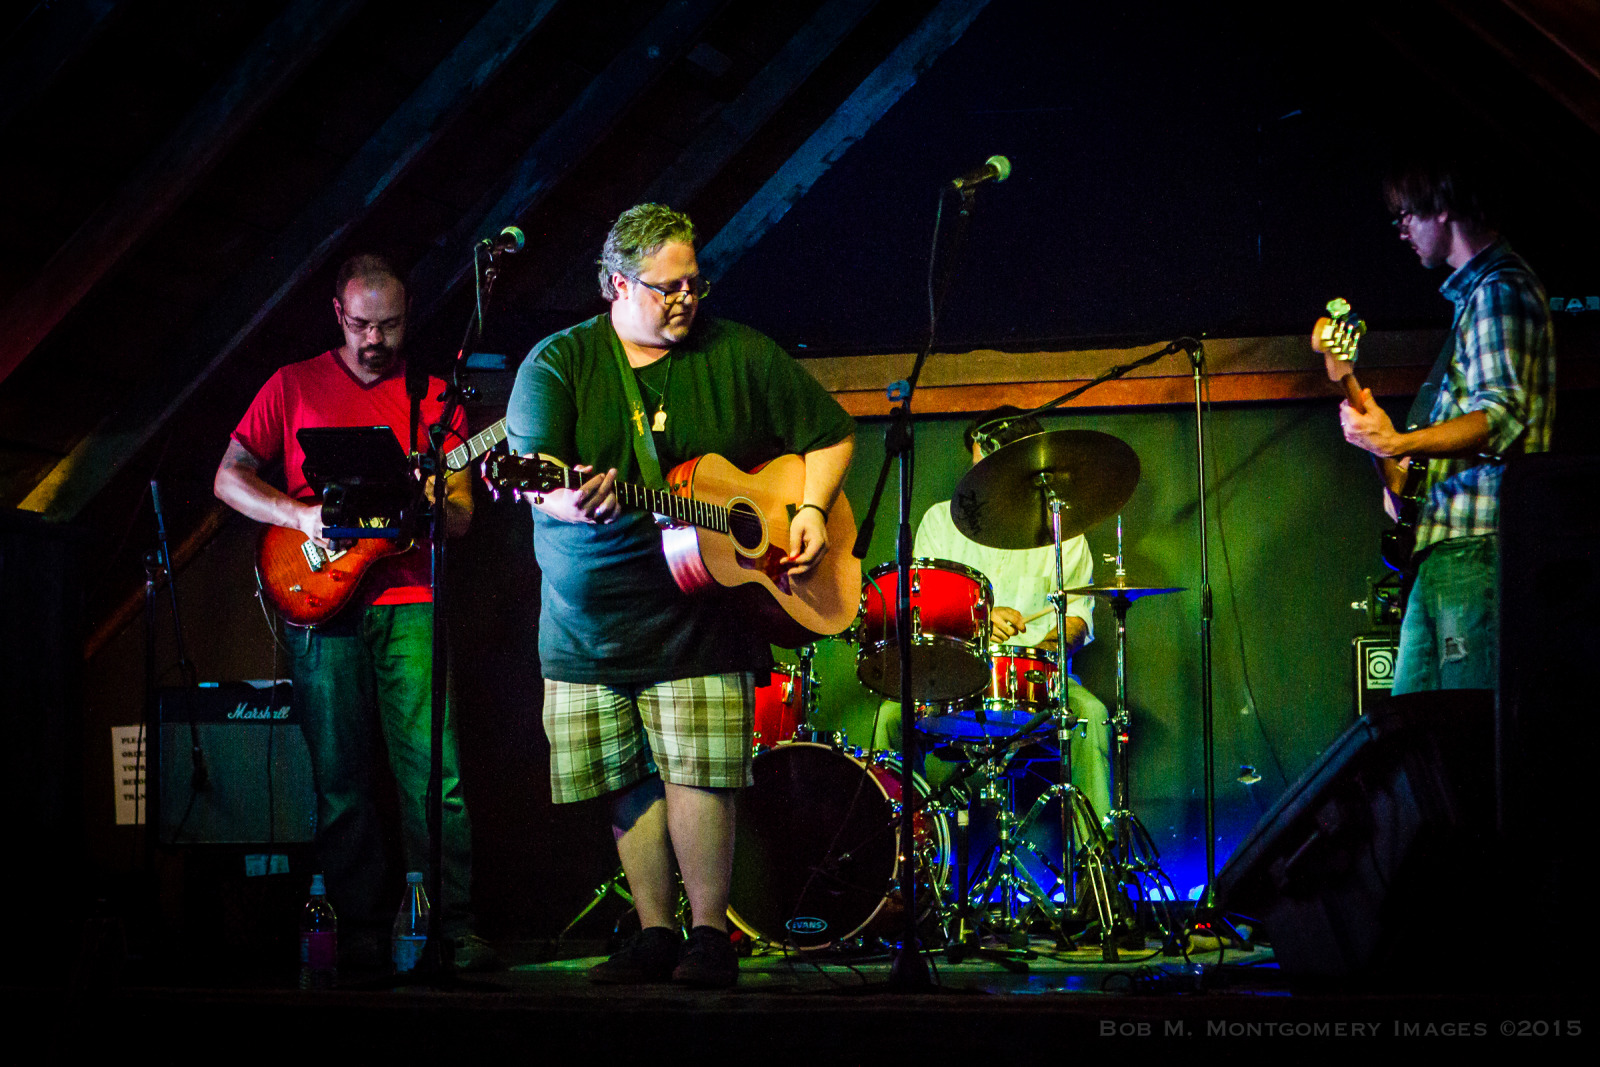 tod and friends 20150725 - 0006.jpg